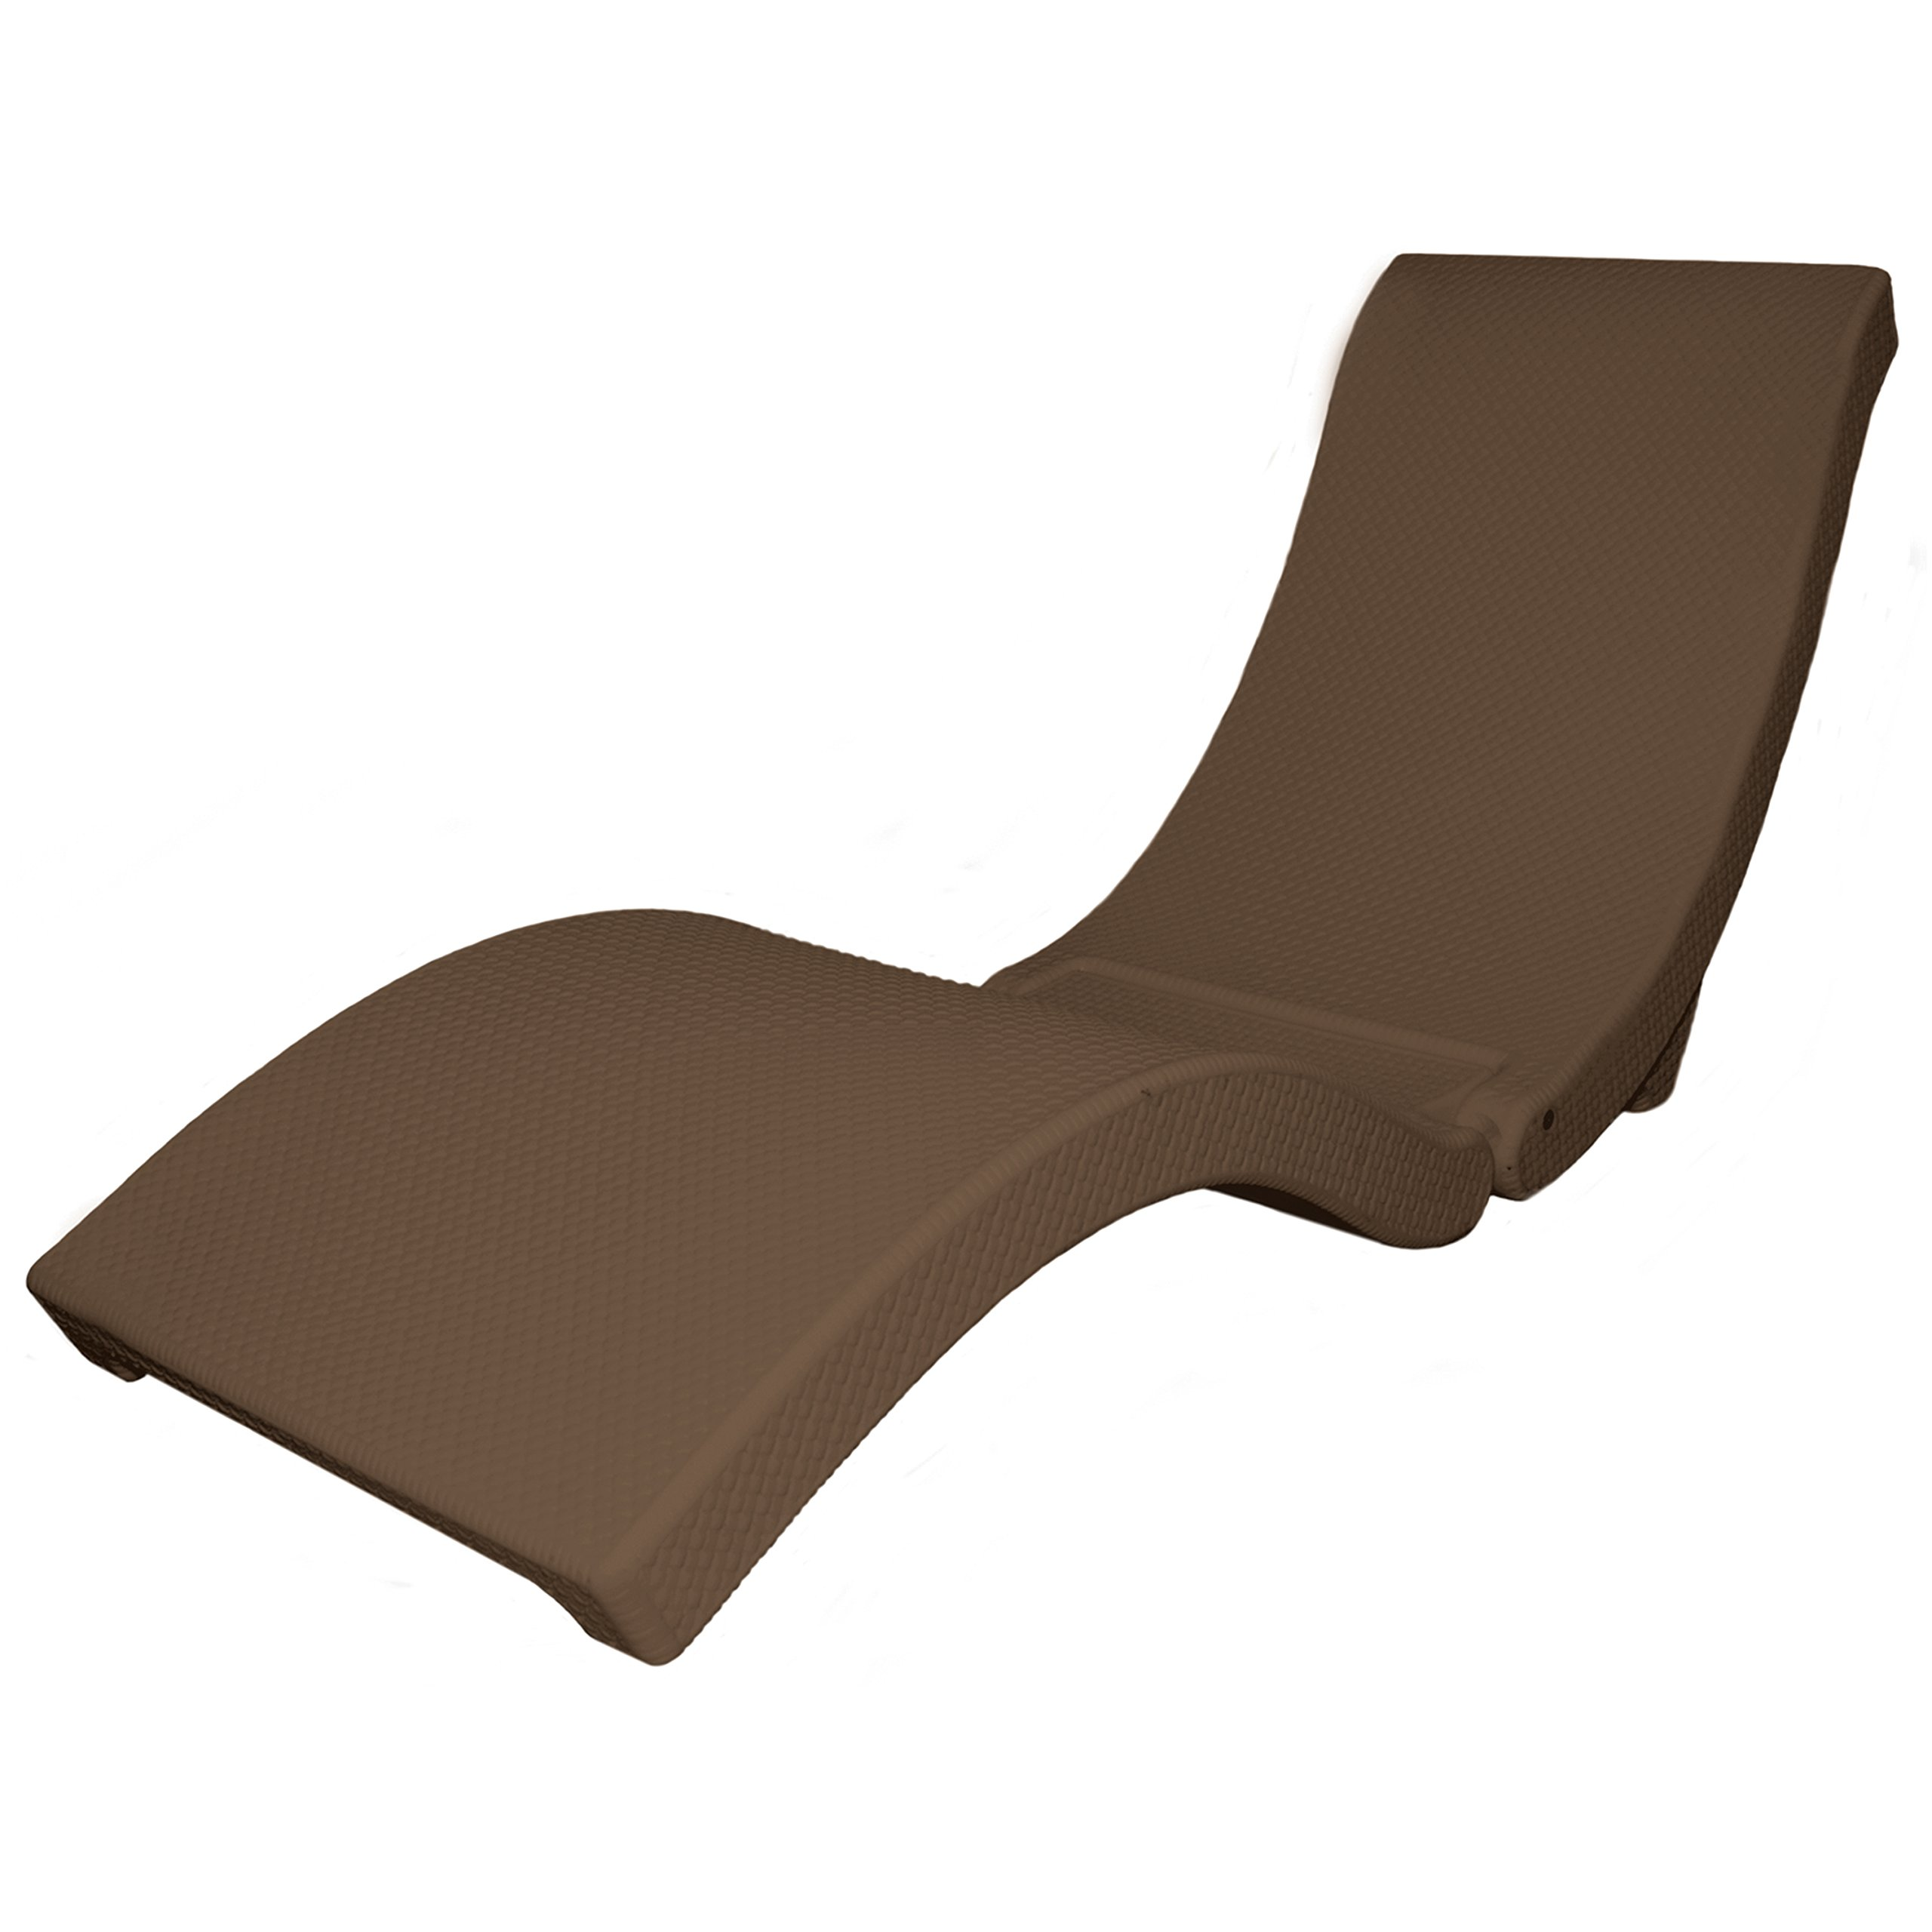 SwimWays 13400 Terra Sol Sonoma Chaise Chocolate Pool Lounge, Brown by SwimWays